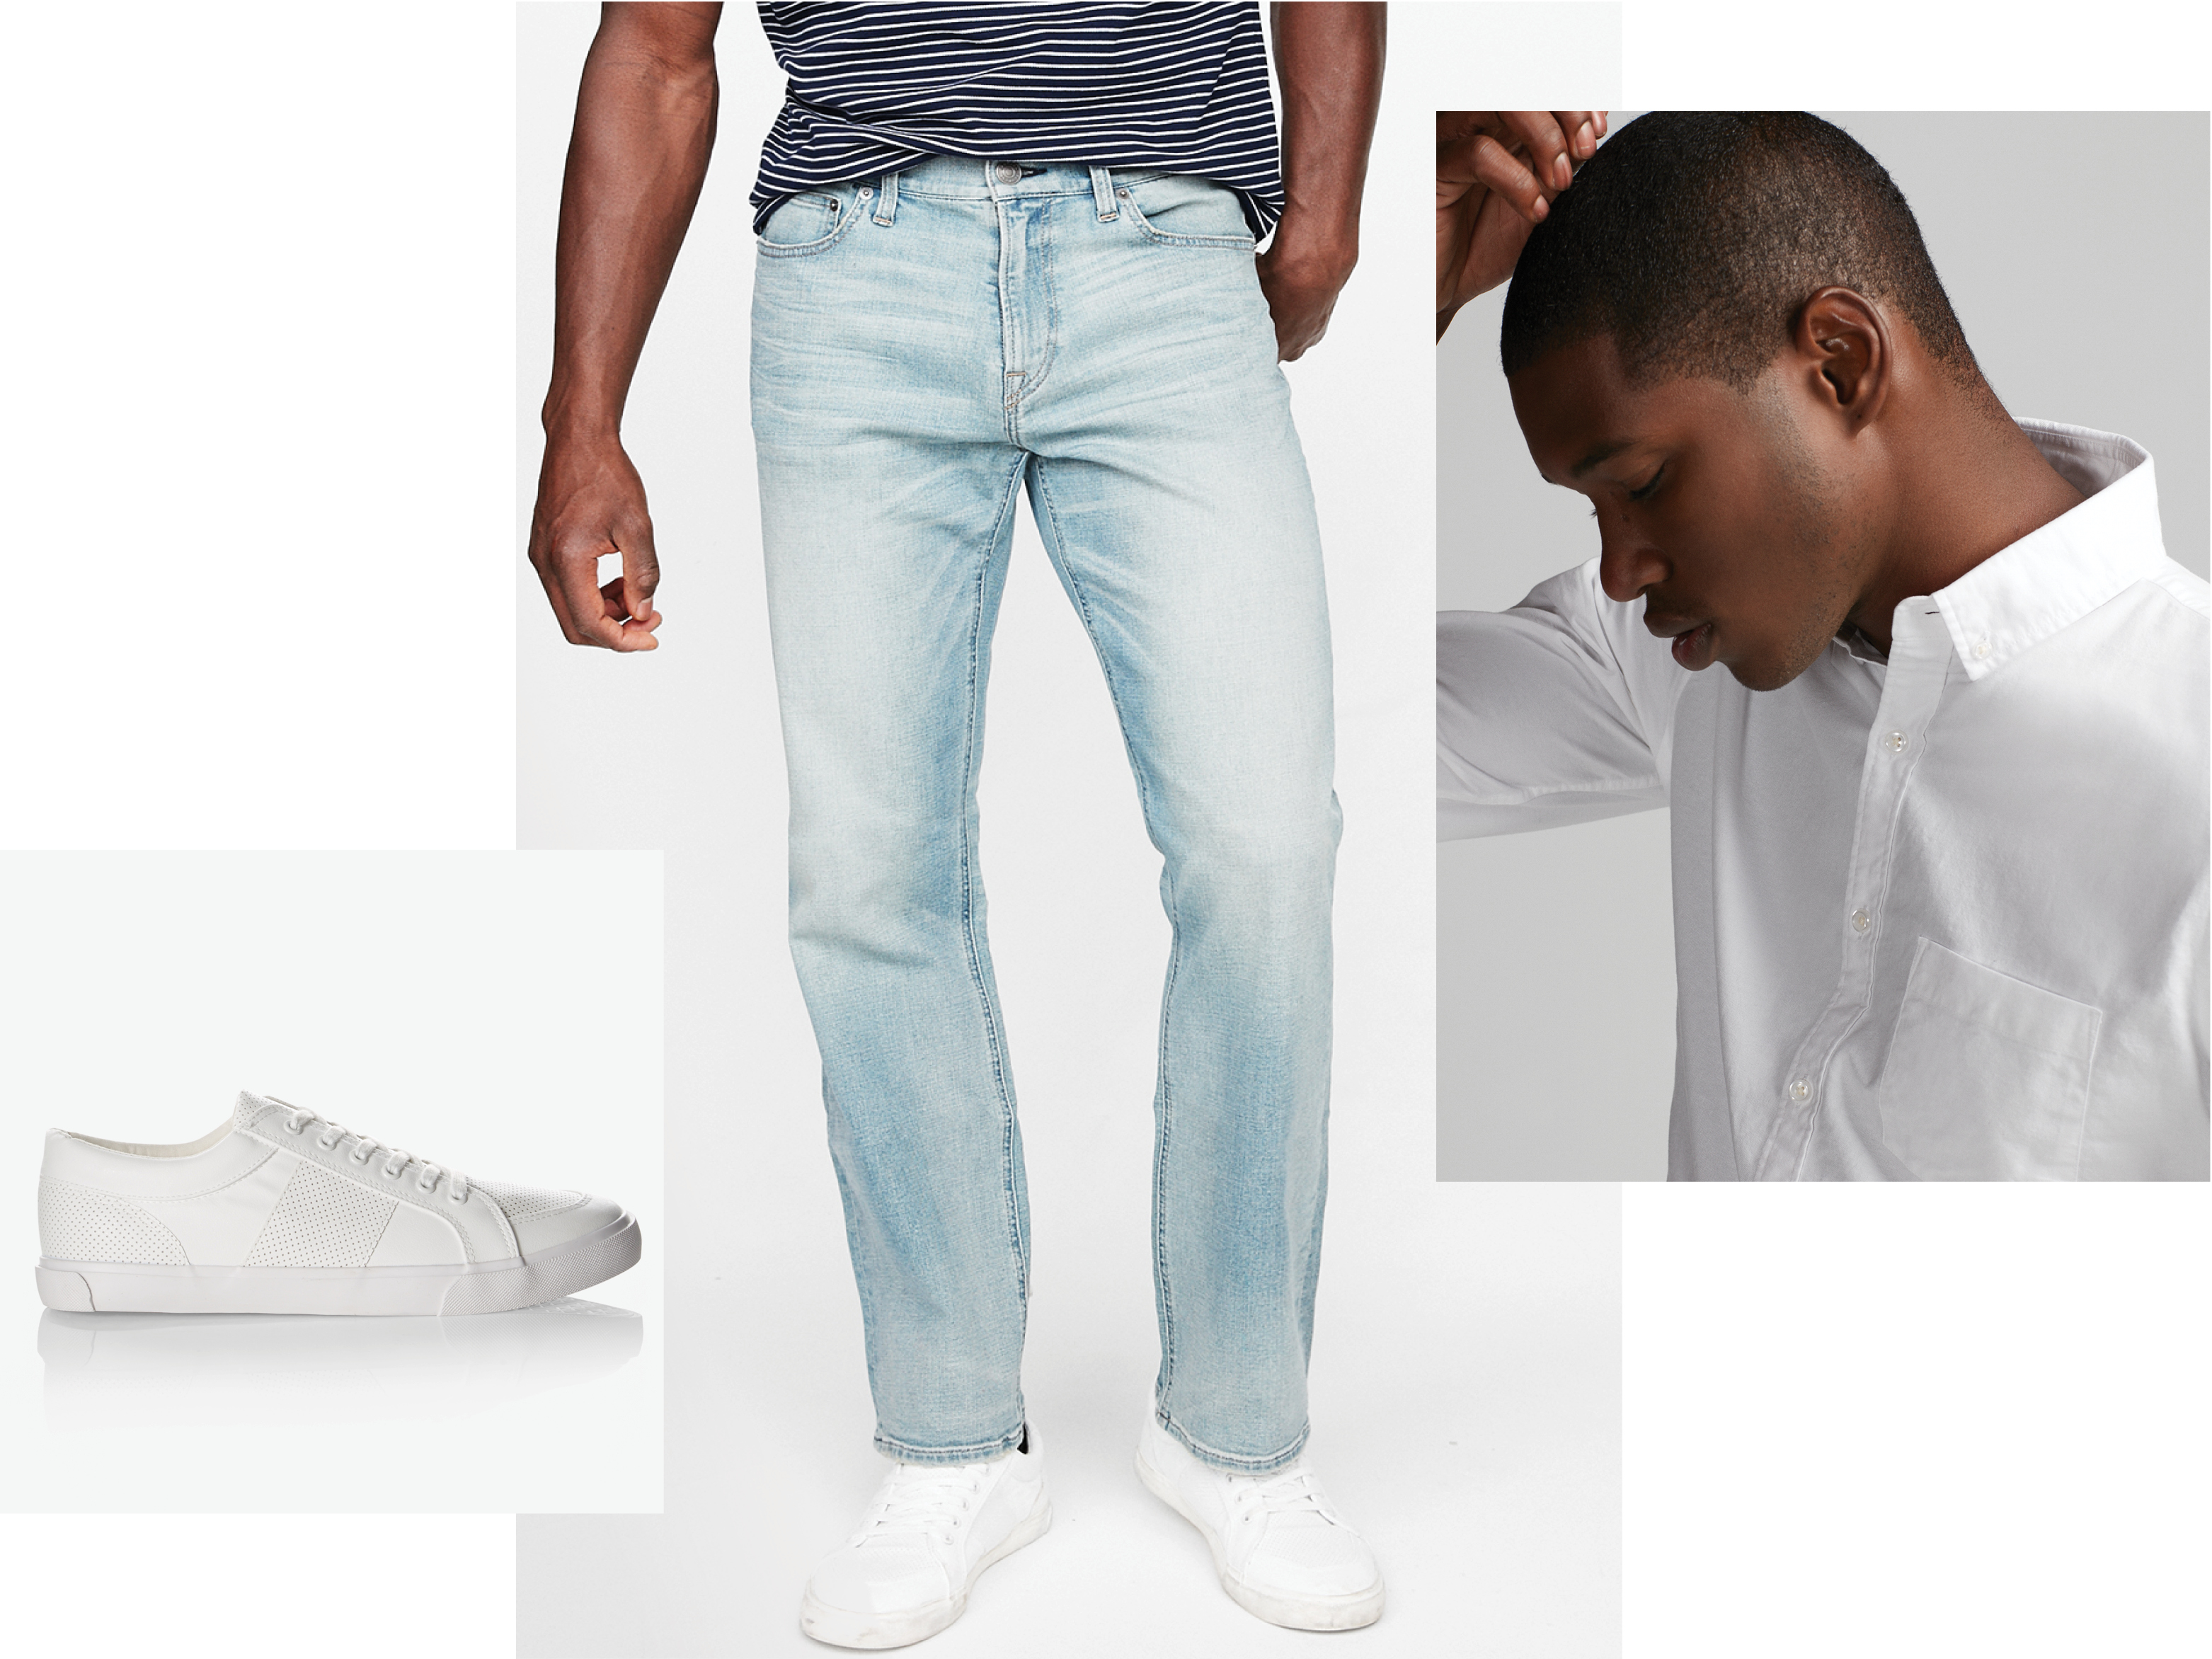 white-sneakers-light-wash-jeans-white-oxford-shirt